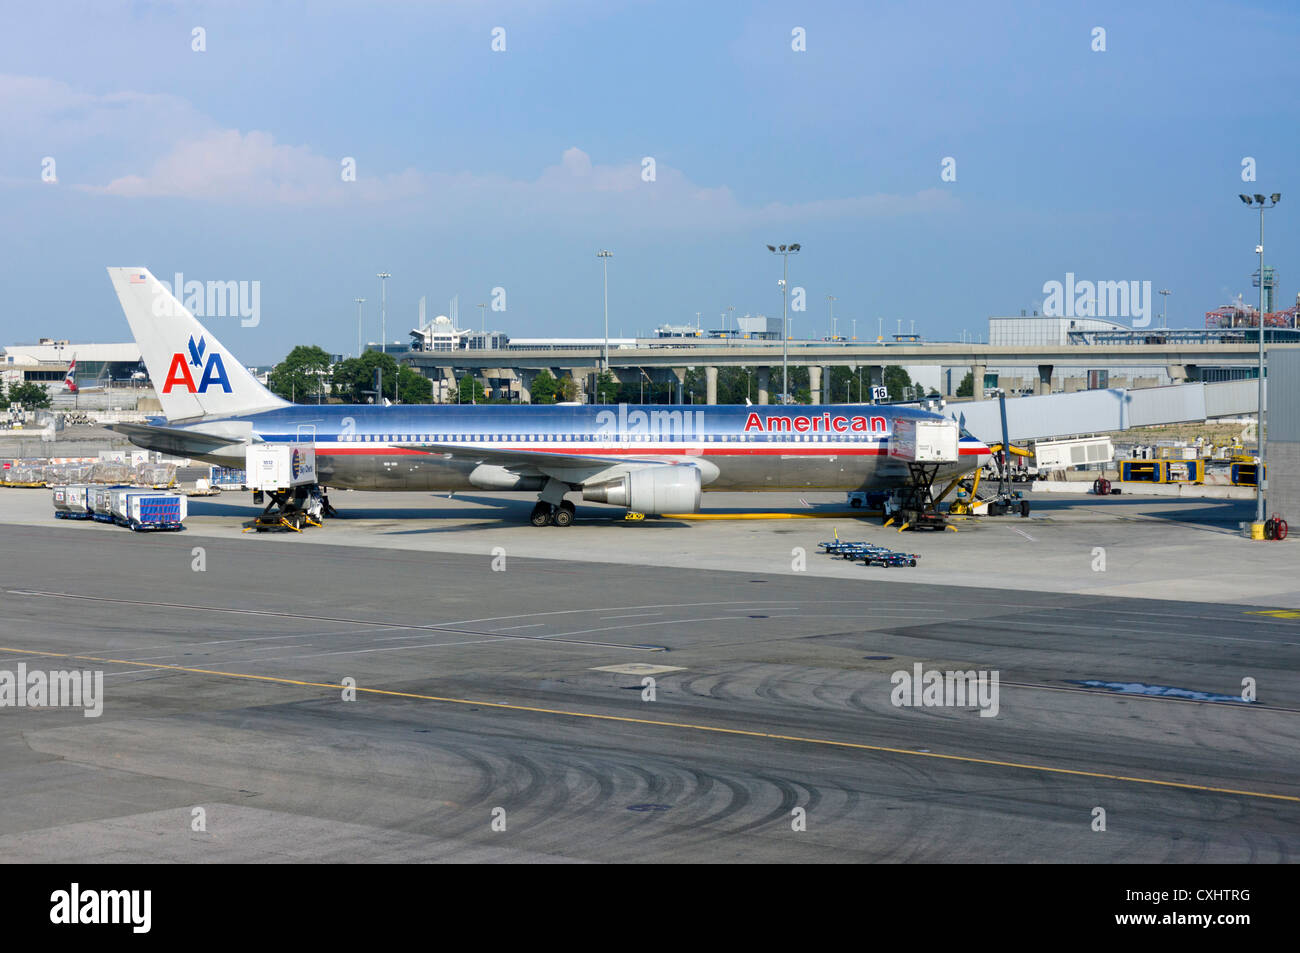 An American Airlines Boeing 767-323 aircraft parked at the gate at JFK Airport, New York, USA - Stock Image